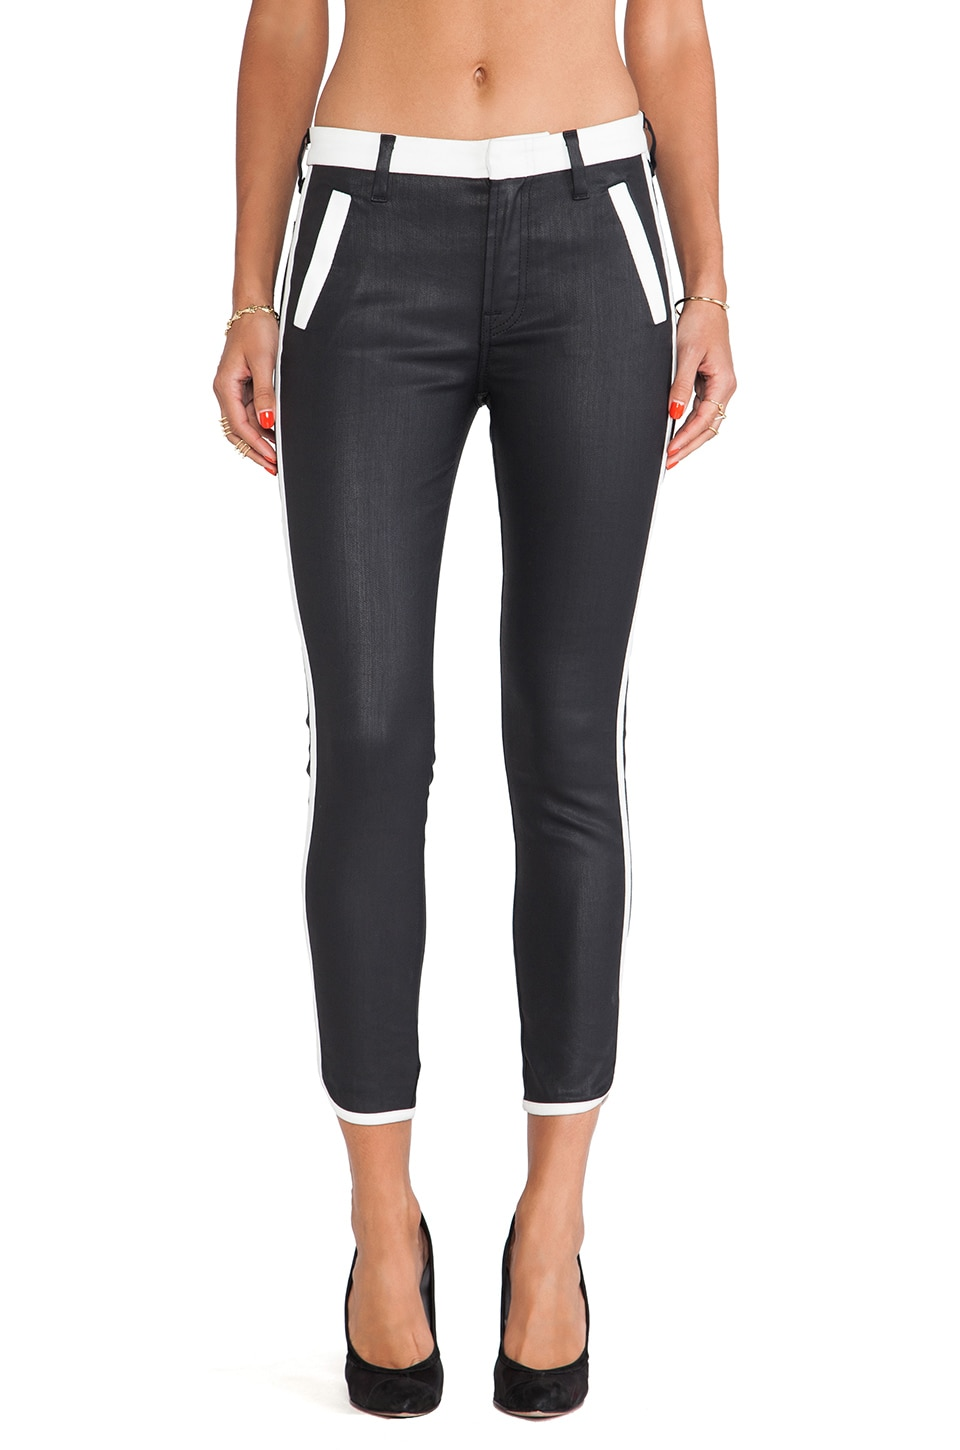 7 For All Mankind Sportif Crop Pant in Black & White